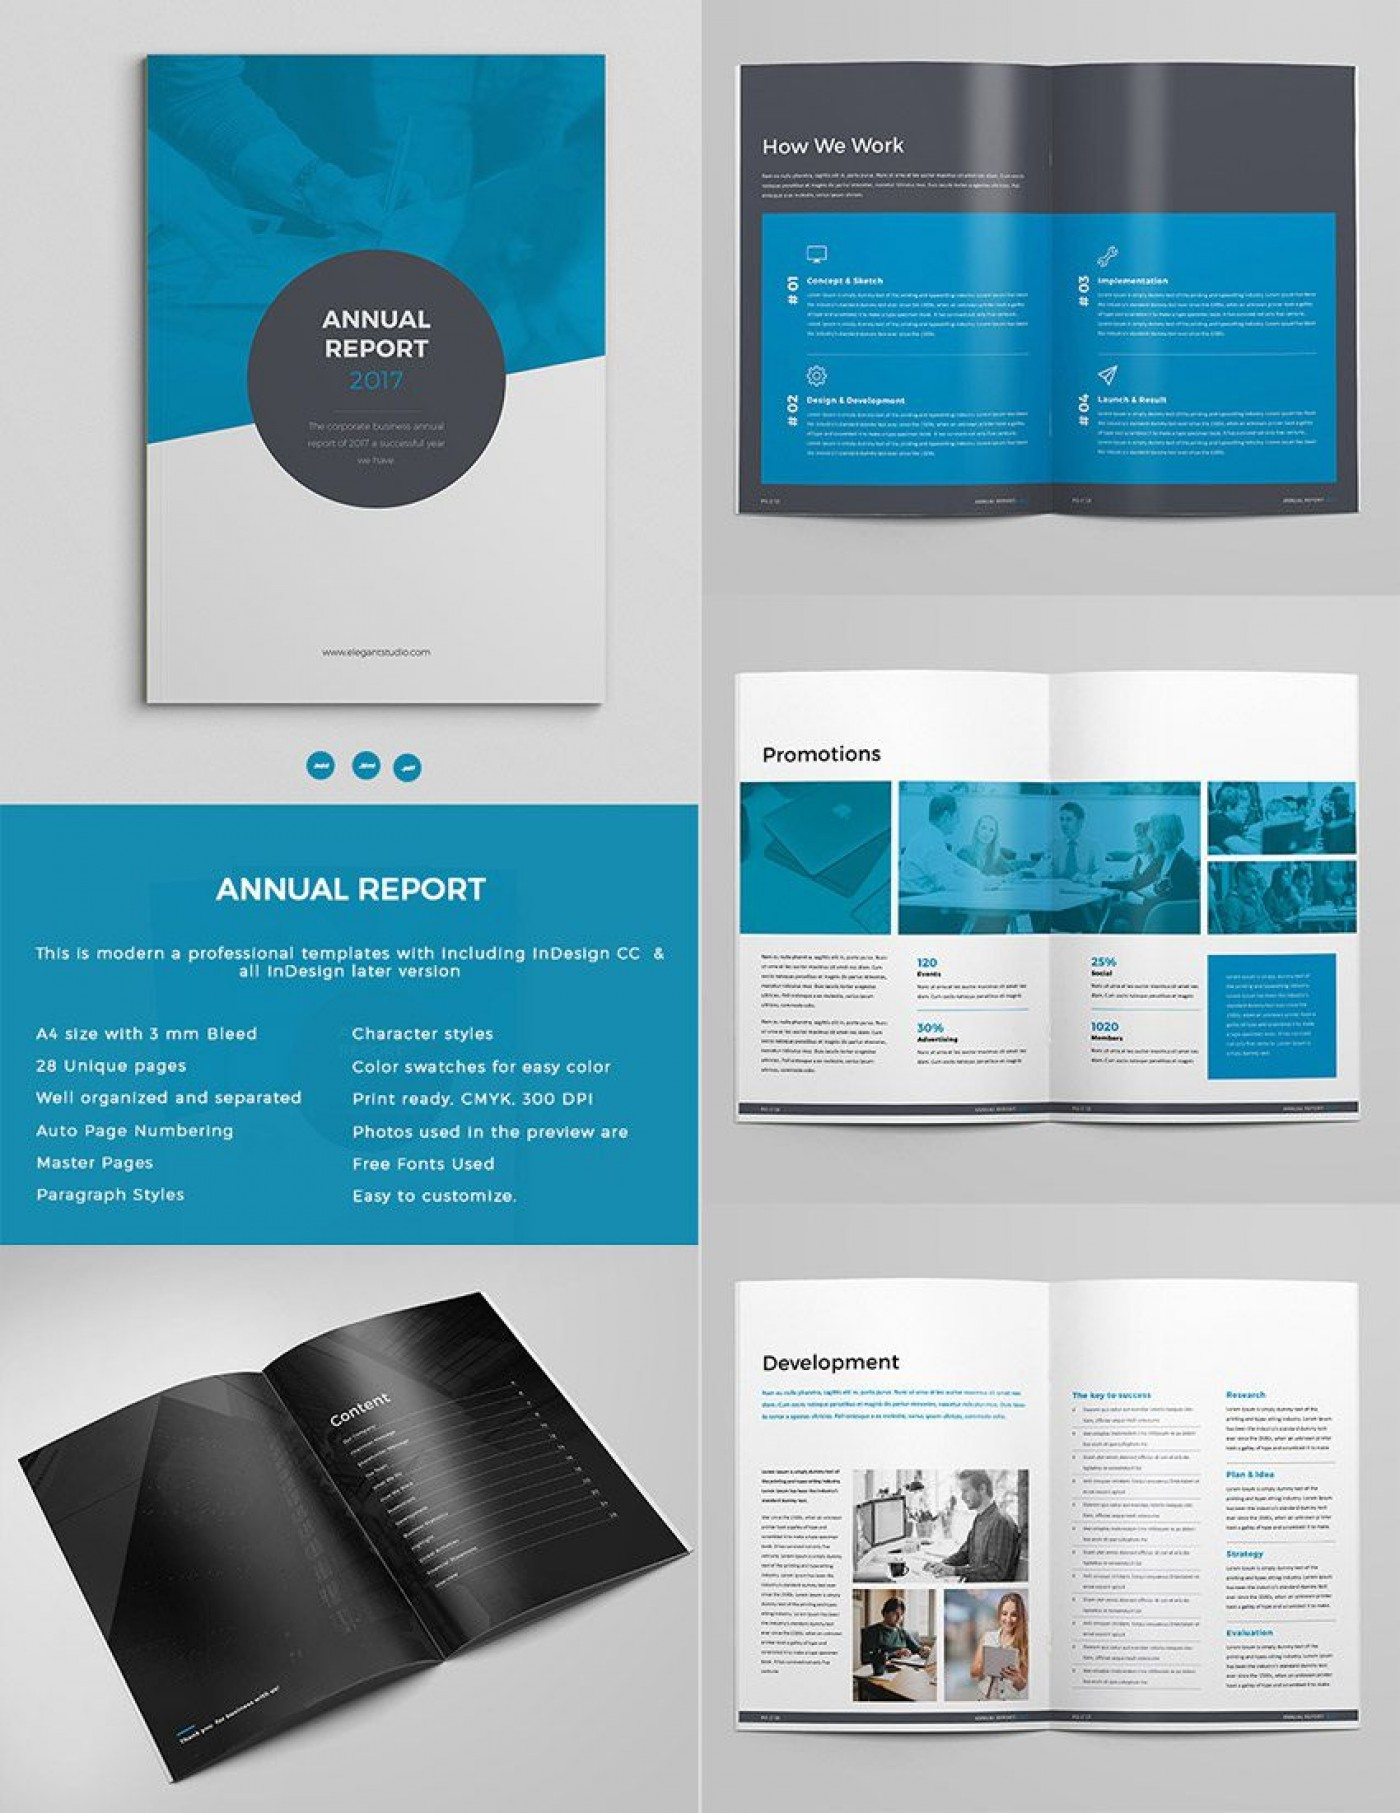 005 Marvelou Free Annual Report Template Indesign Image  Adobe Non Profit1400